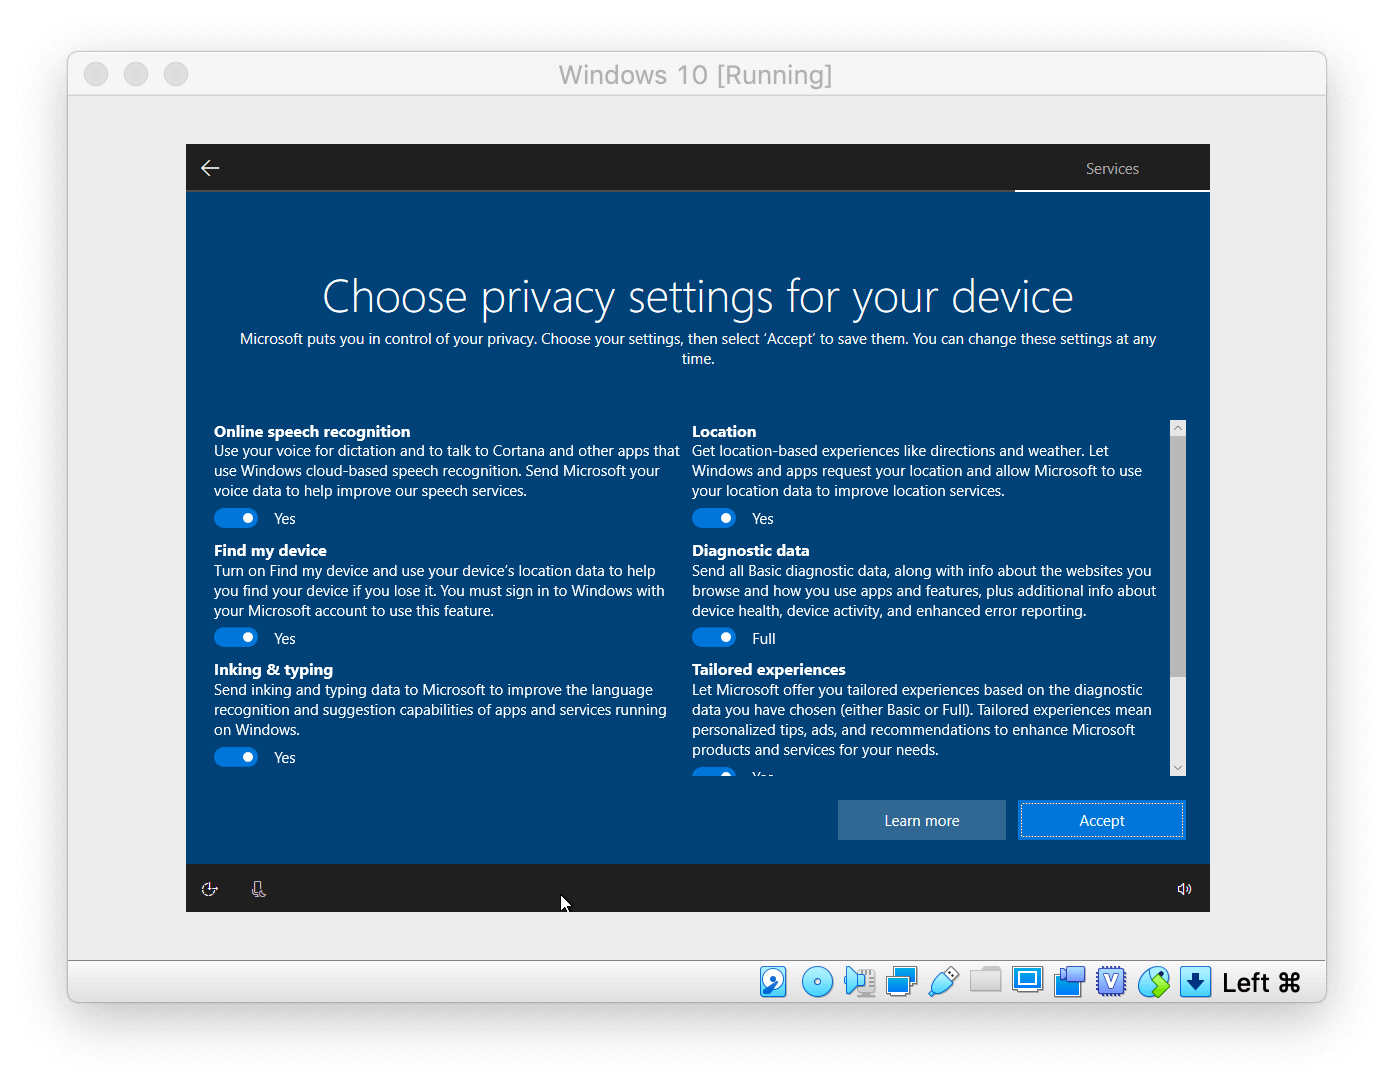 Windows Setup asking to choose the privacy settings